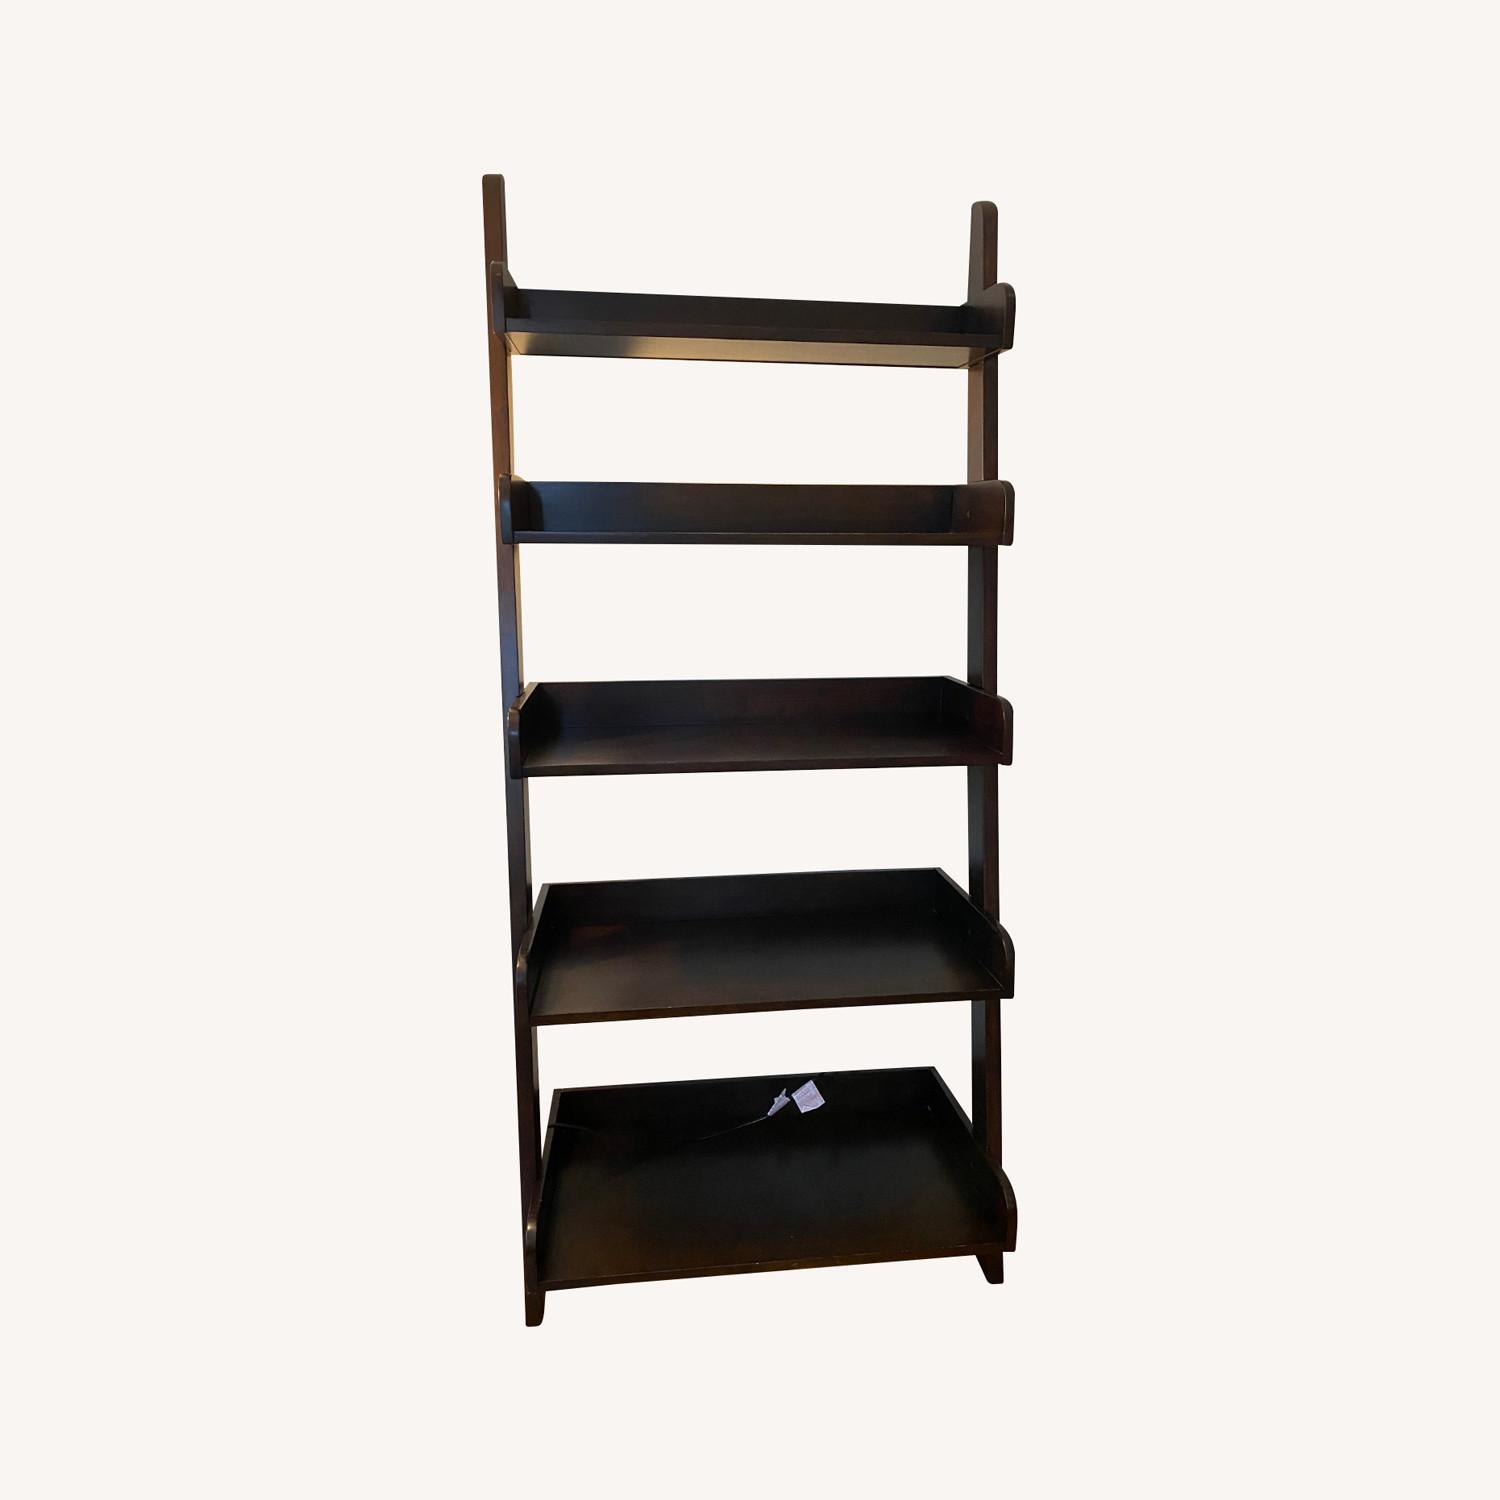 Pottery Barn Studio Ladder Shelf - Espresso Color - image-0